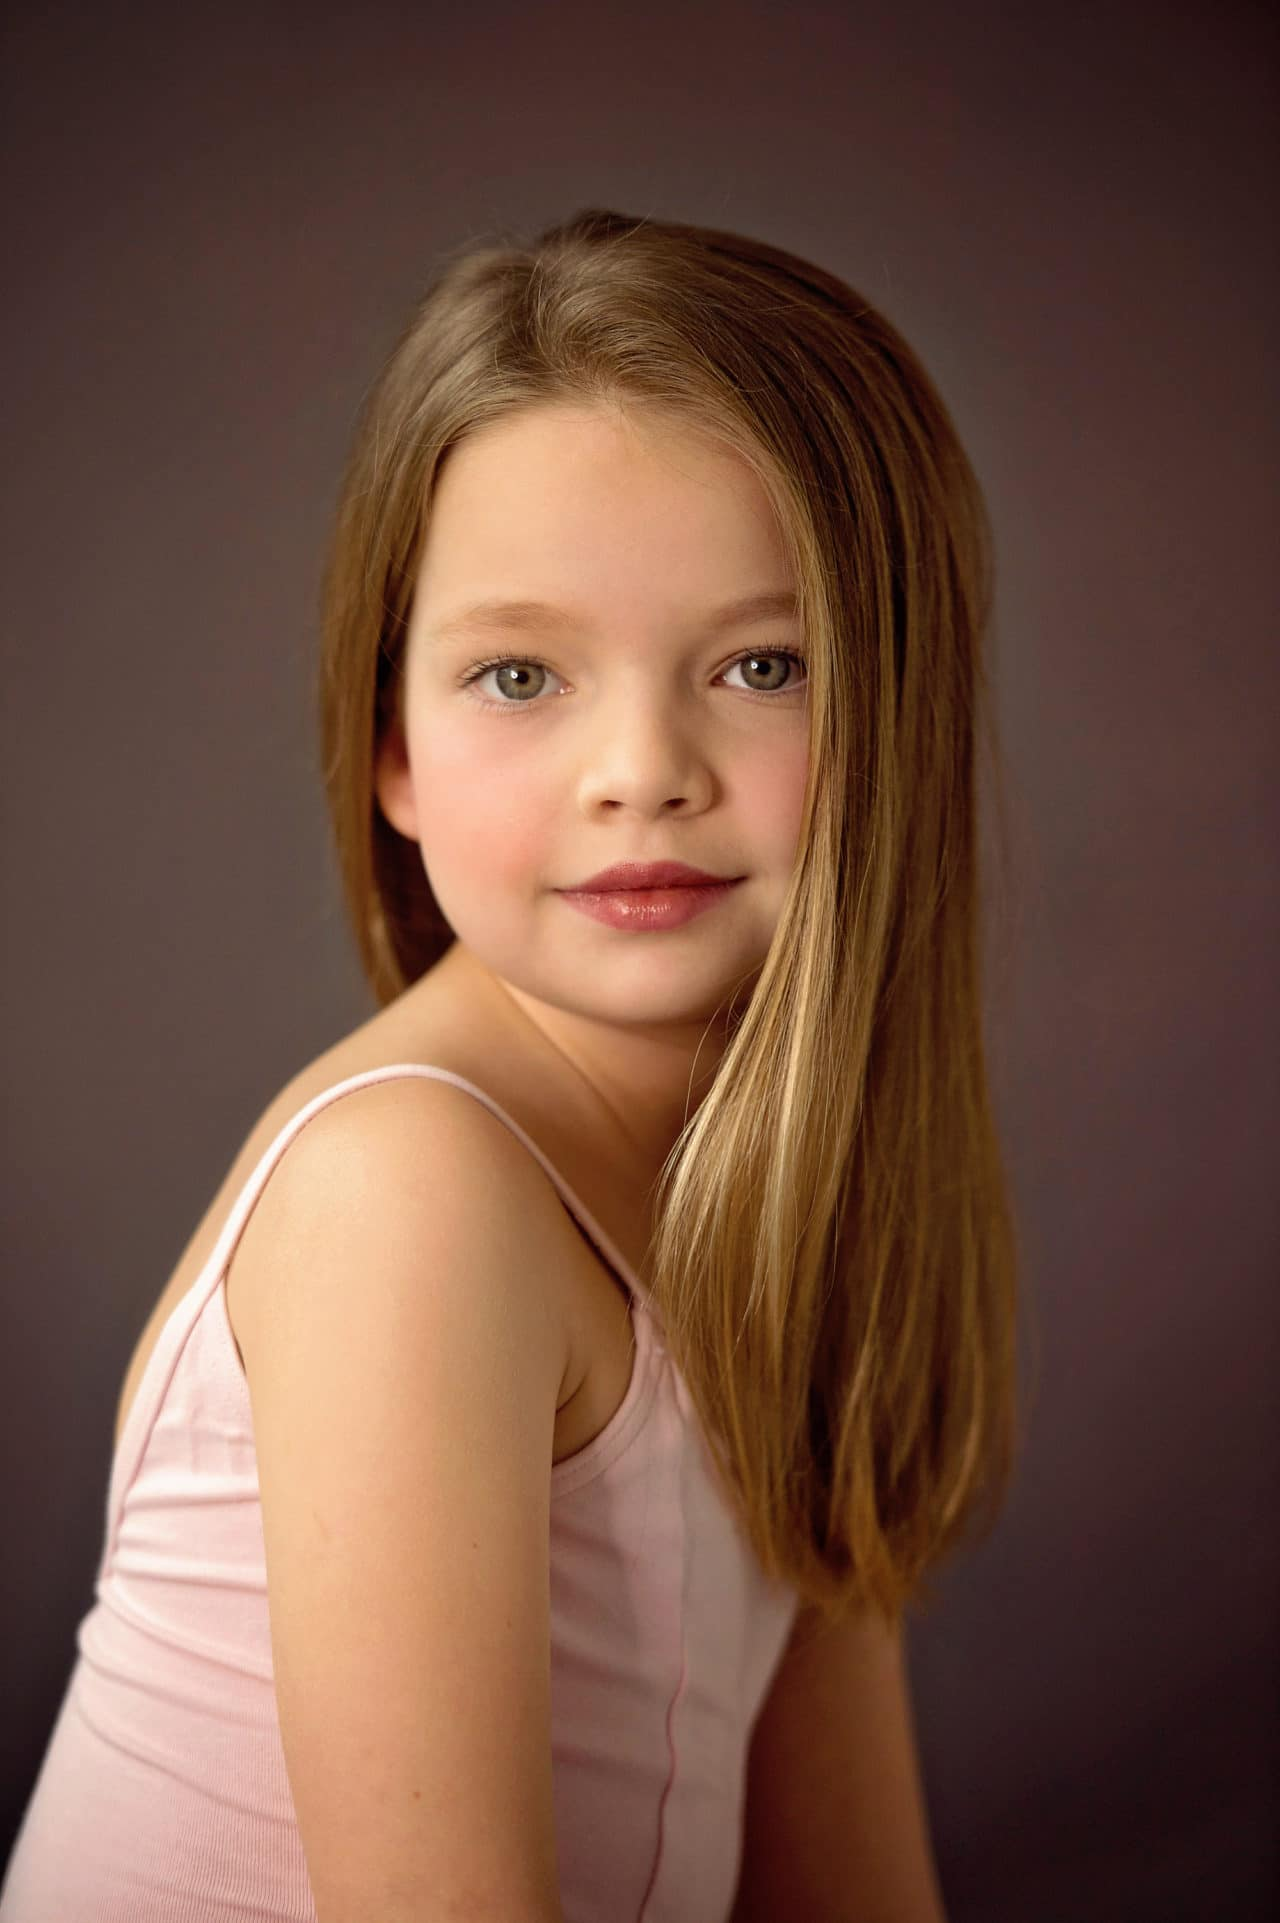 child model photography, studio portraits roswell